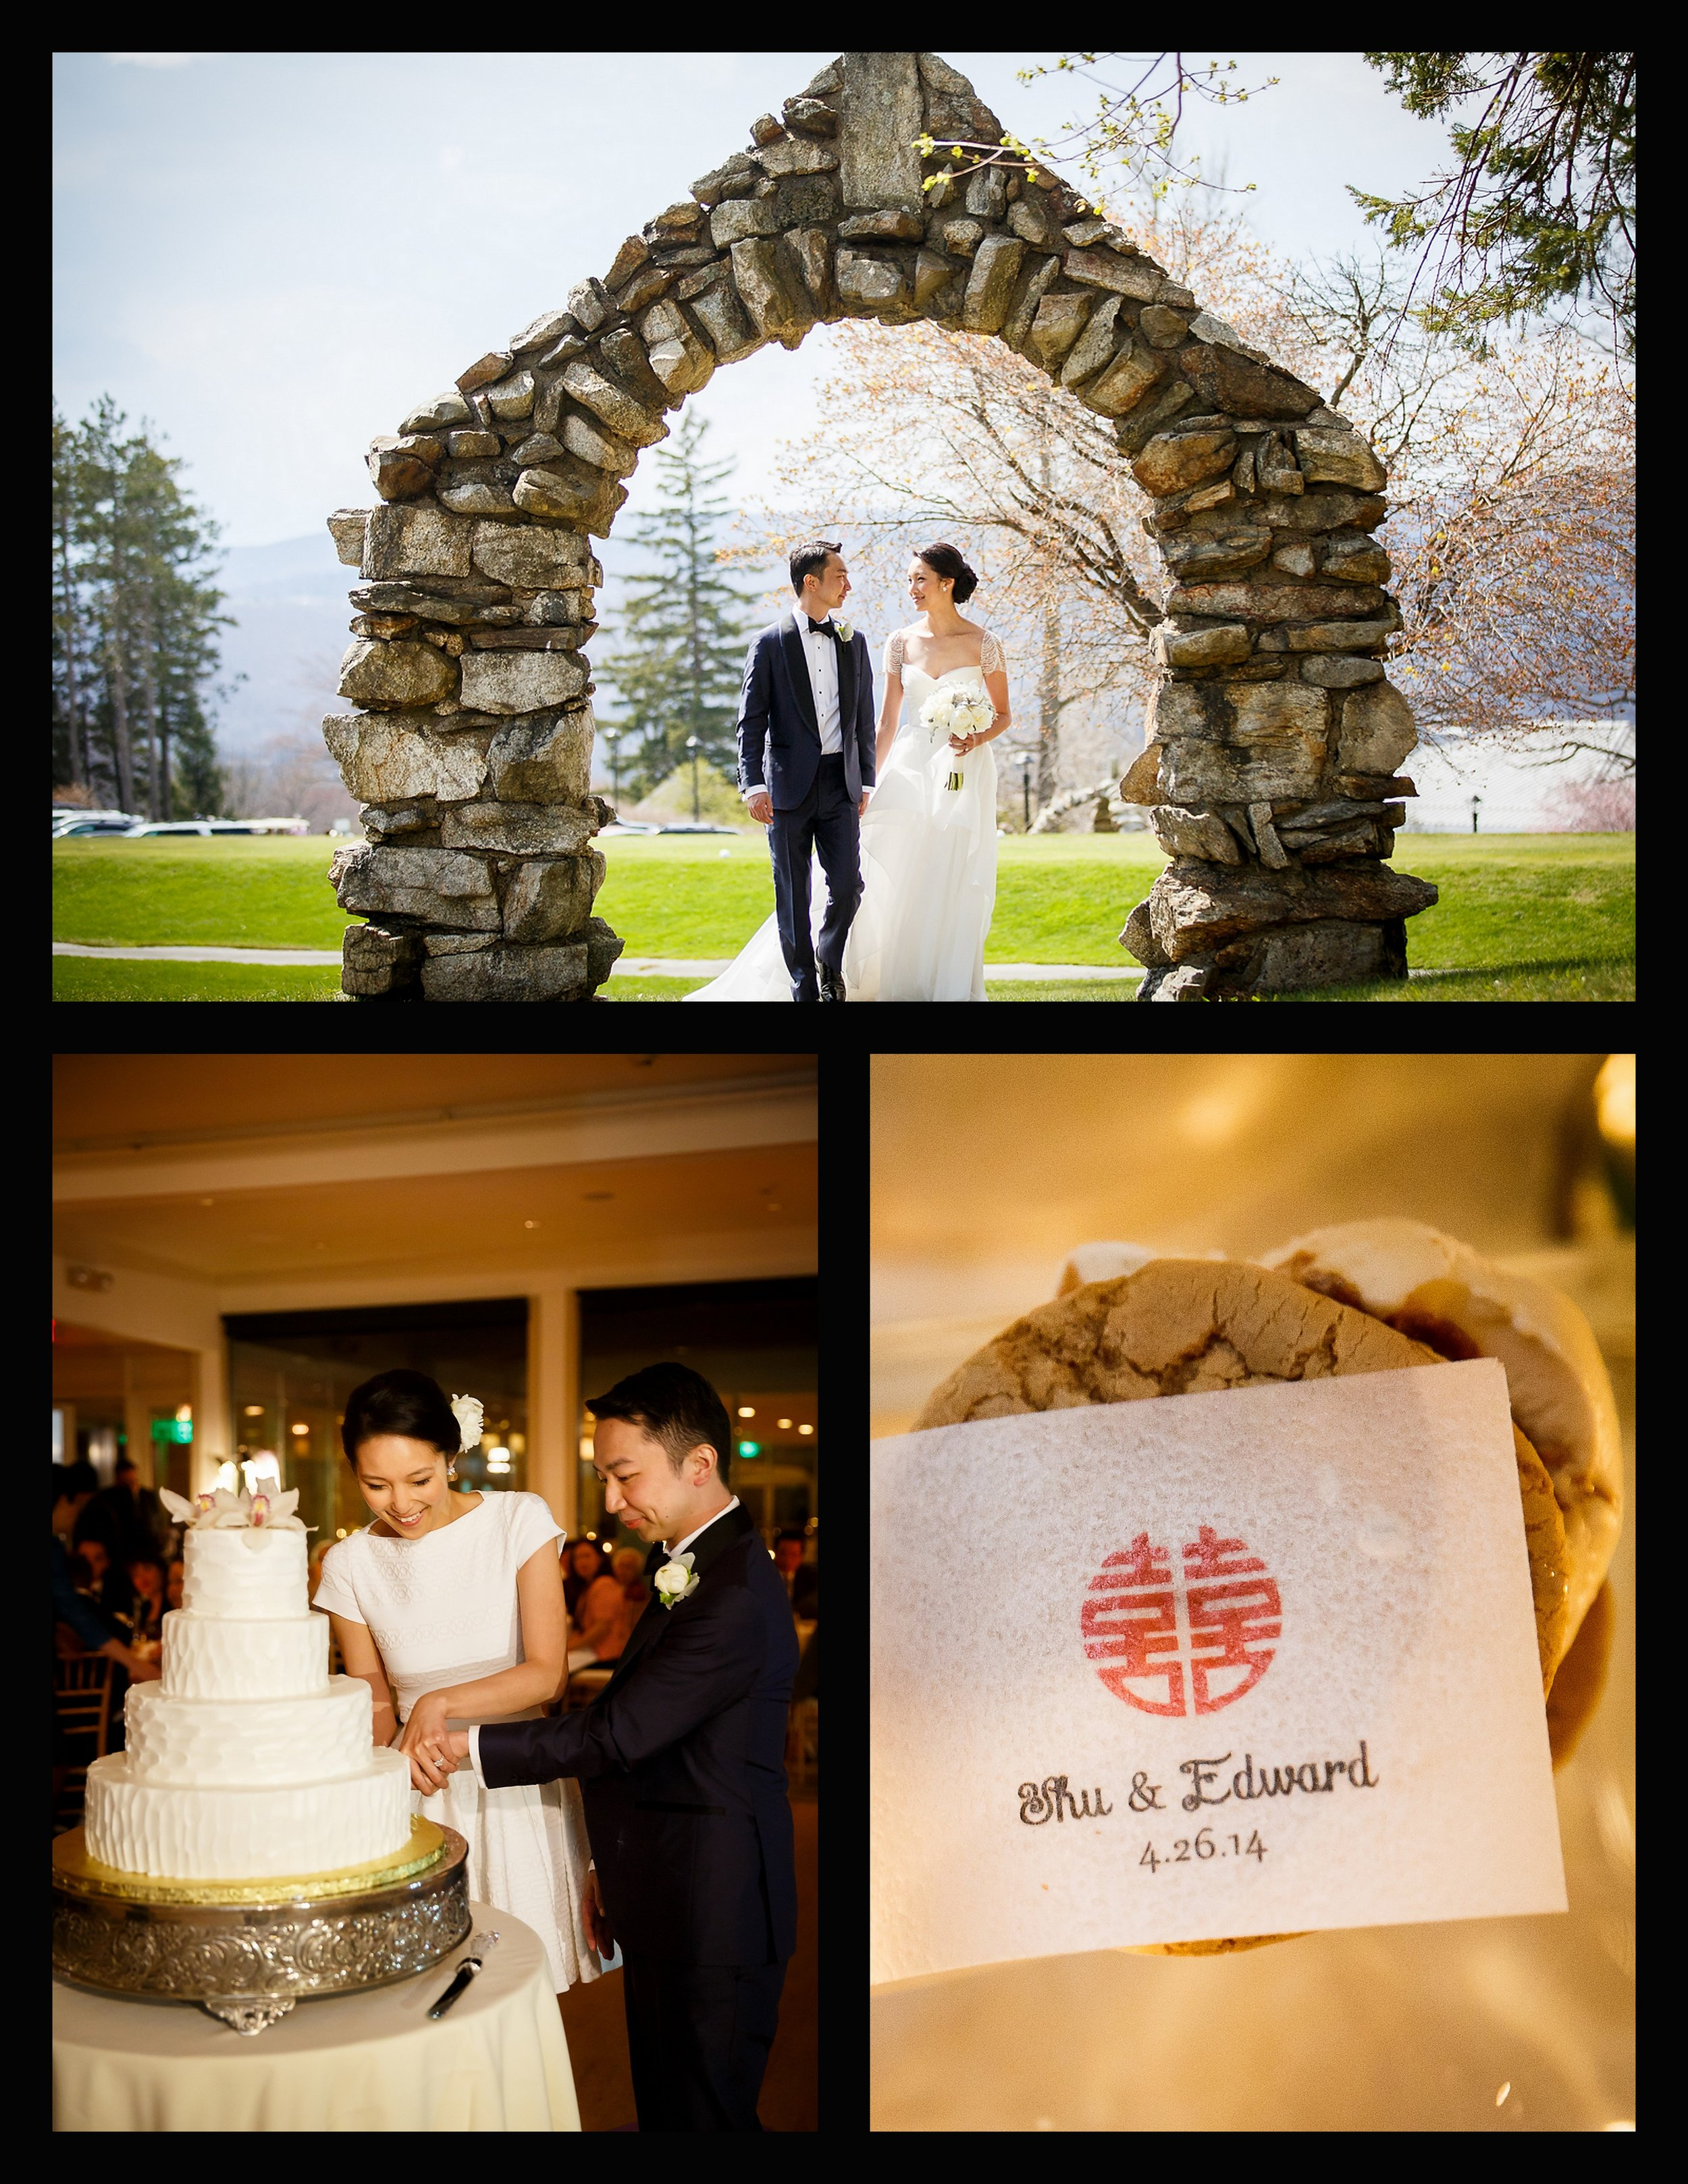 couple under stone arch, cake cutting, coolhaus favors